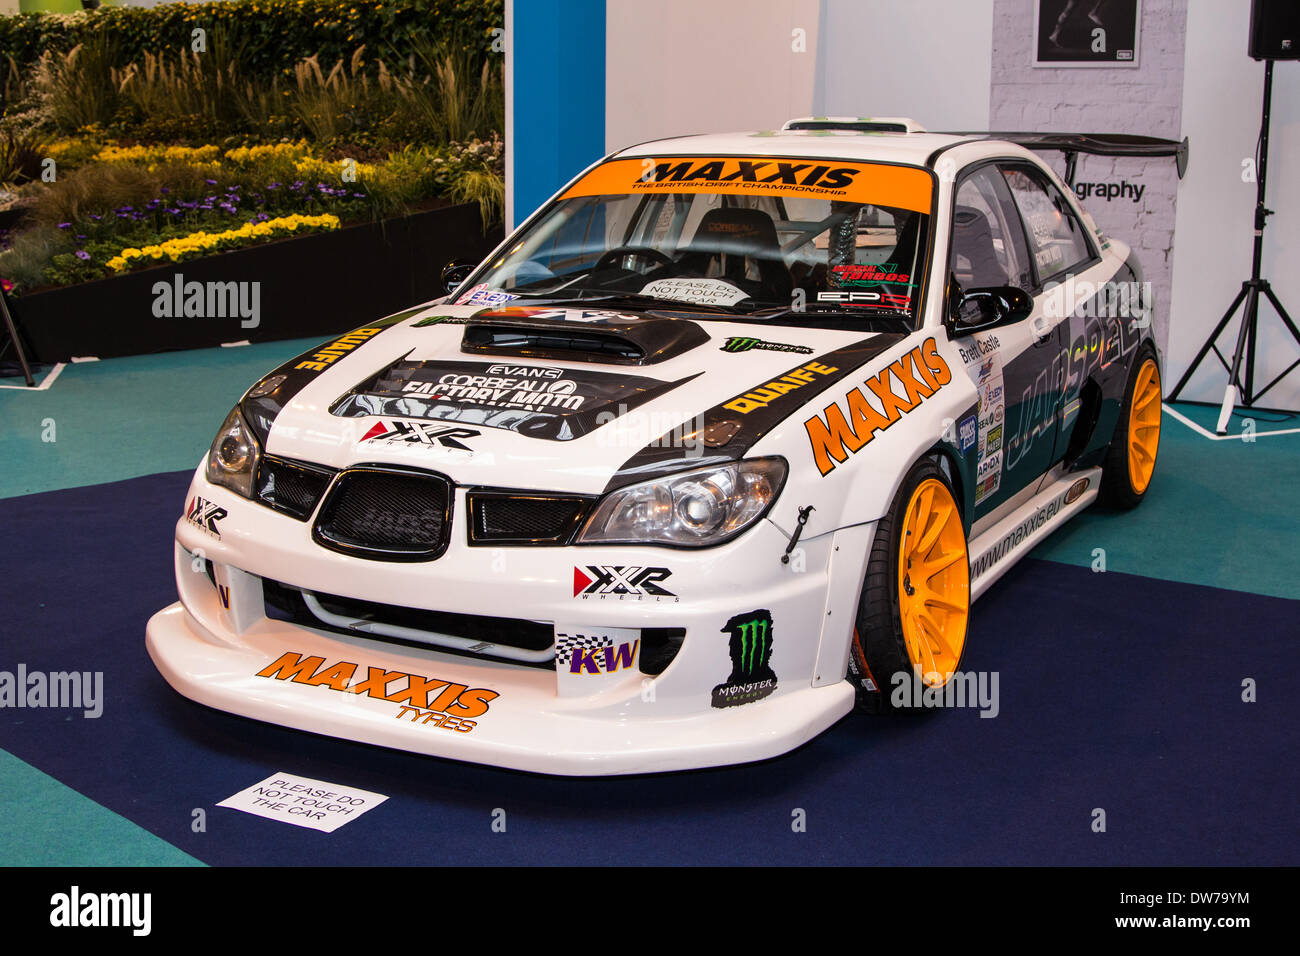 Japspeed drift car at the Photography Show at the NEC In Birmingham showing for four days. - Stock Image